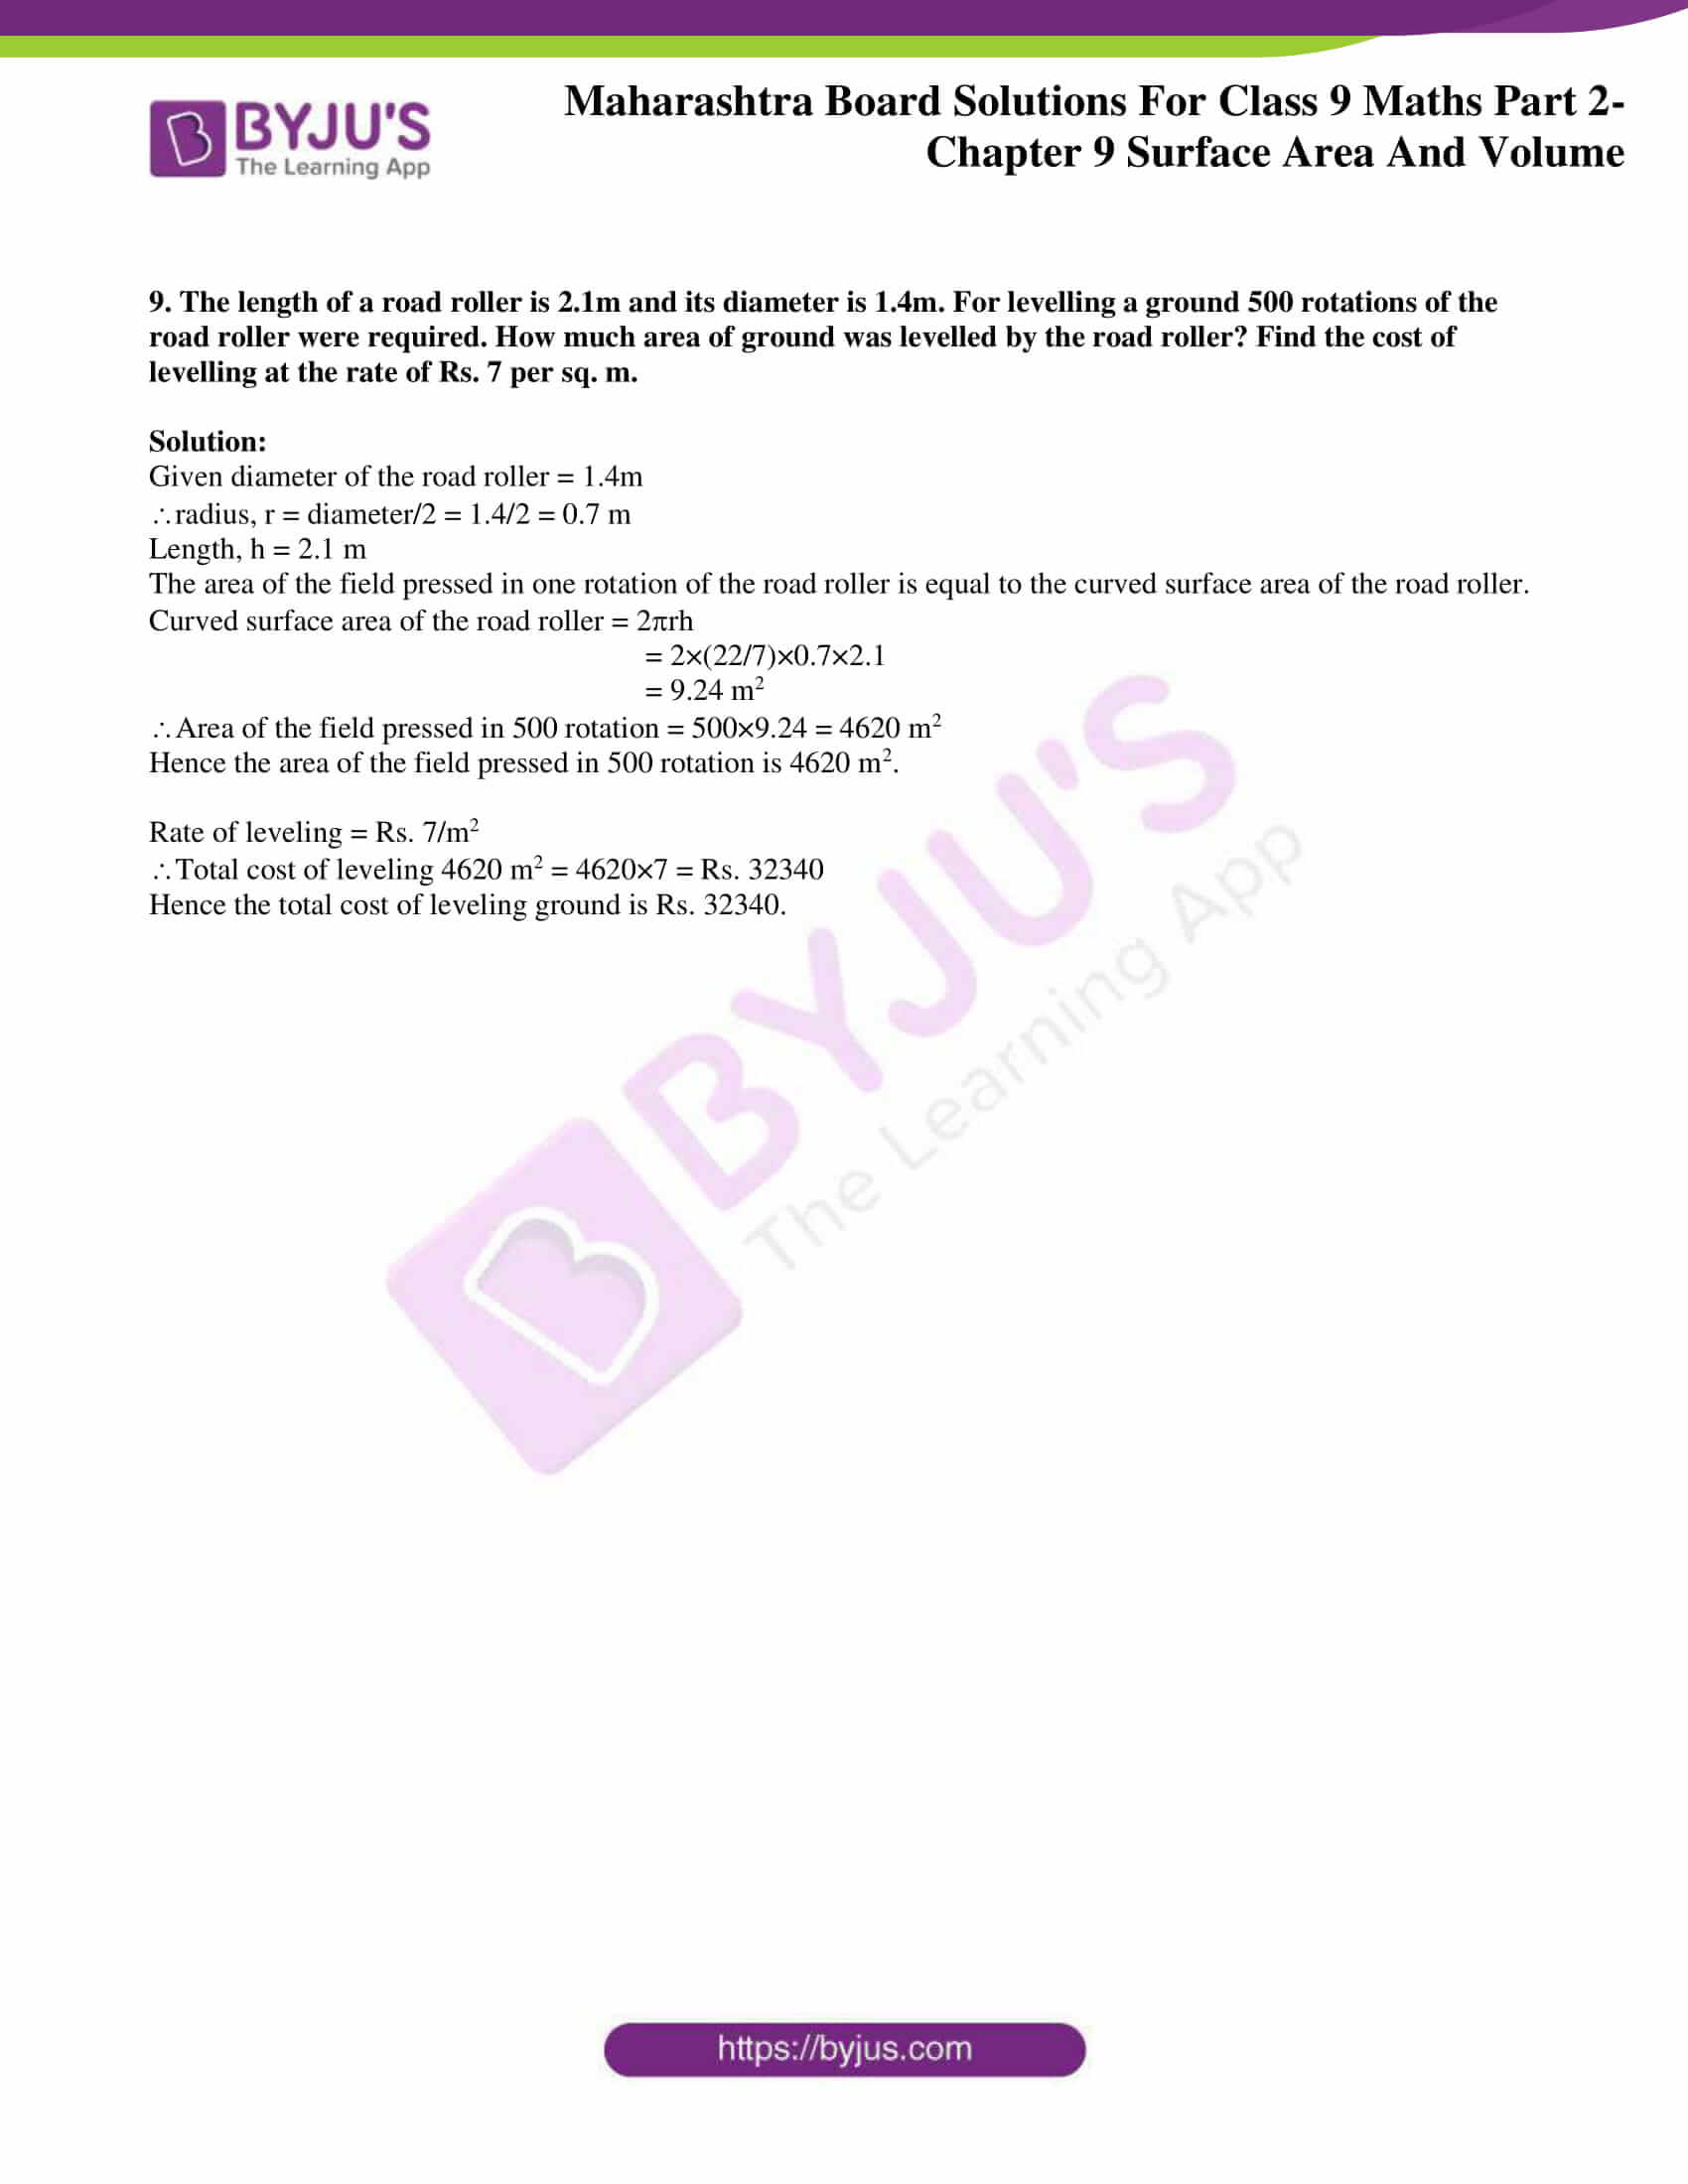 msbshse solutions for class 9 maths part 2 chapter 9 14